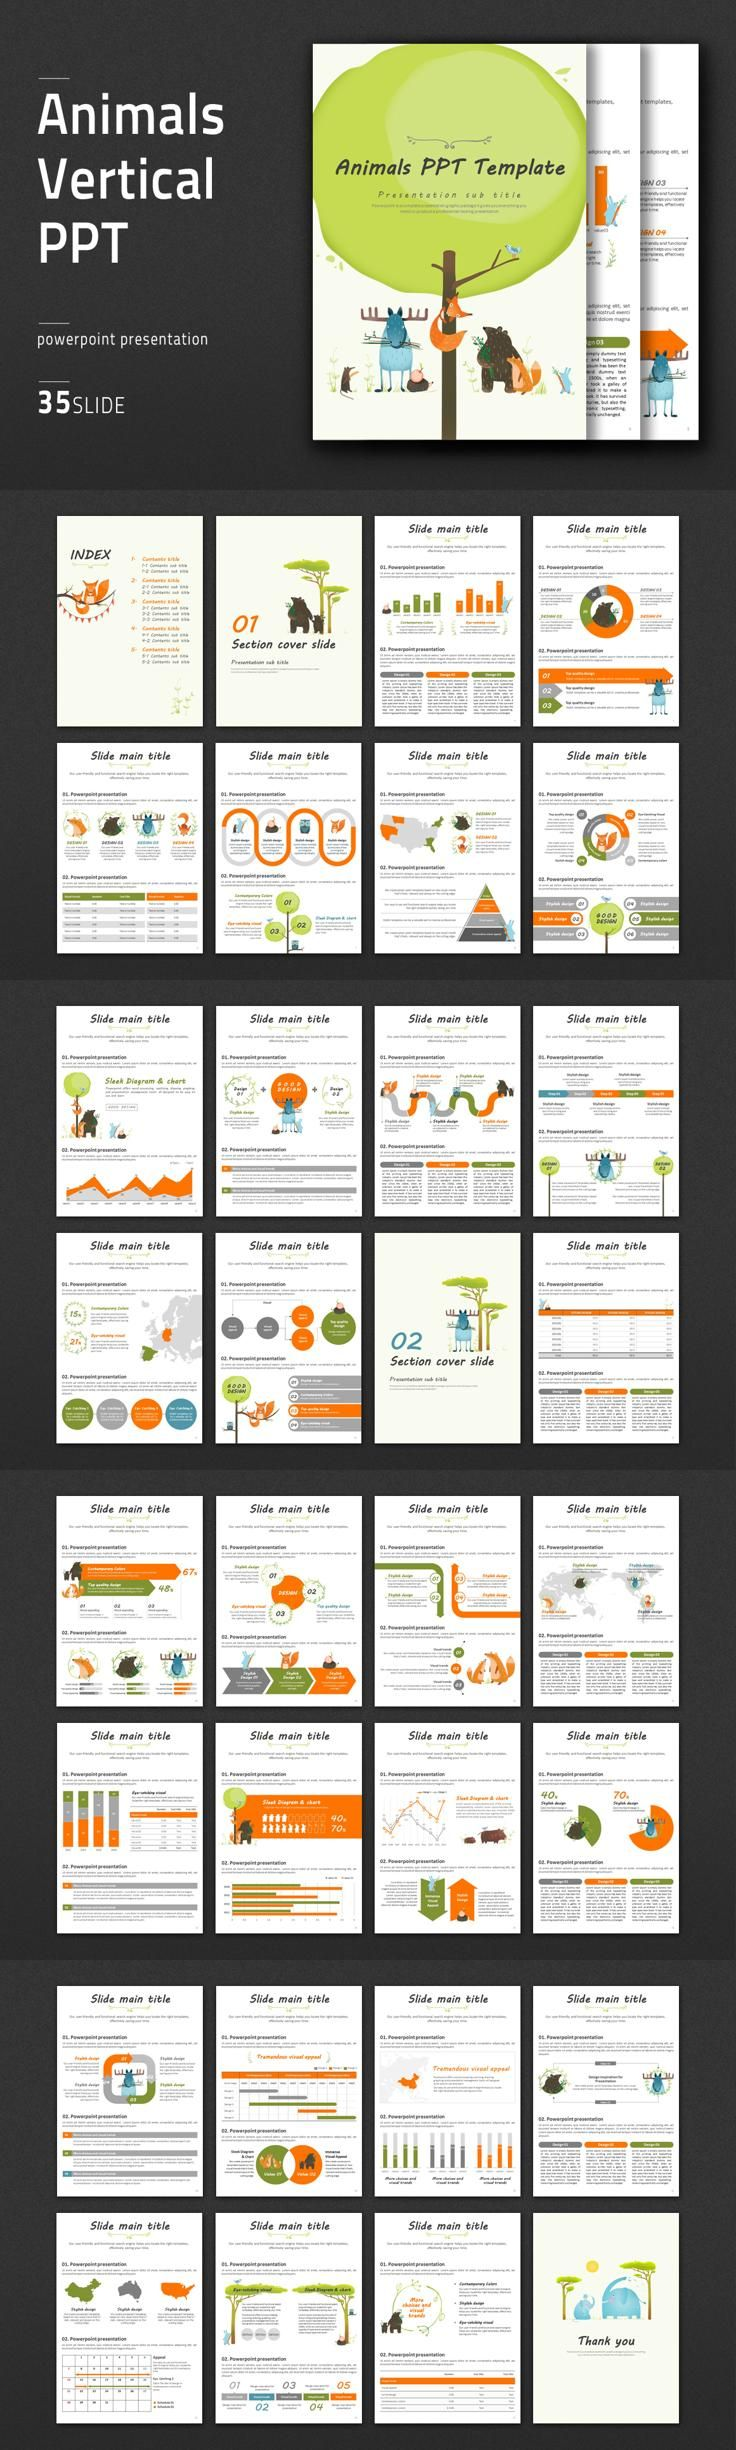 66 best powerpoint templates images on pinterest diy app ui and presentation template from good pello download httpscreativemarket alramifo Images